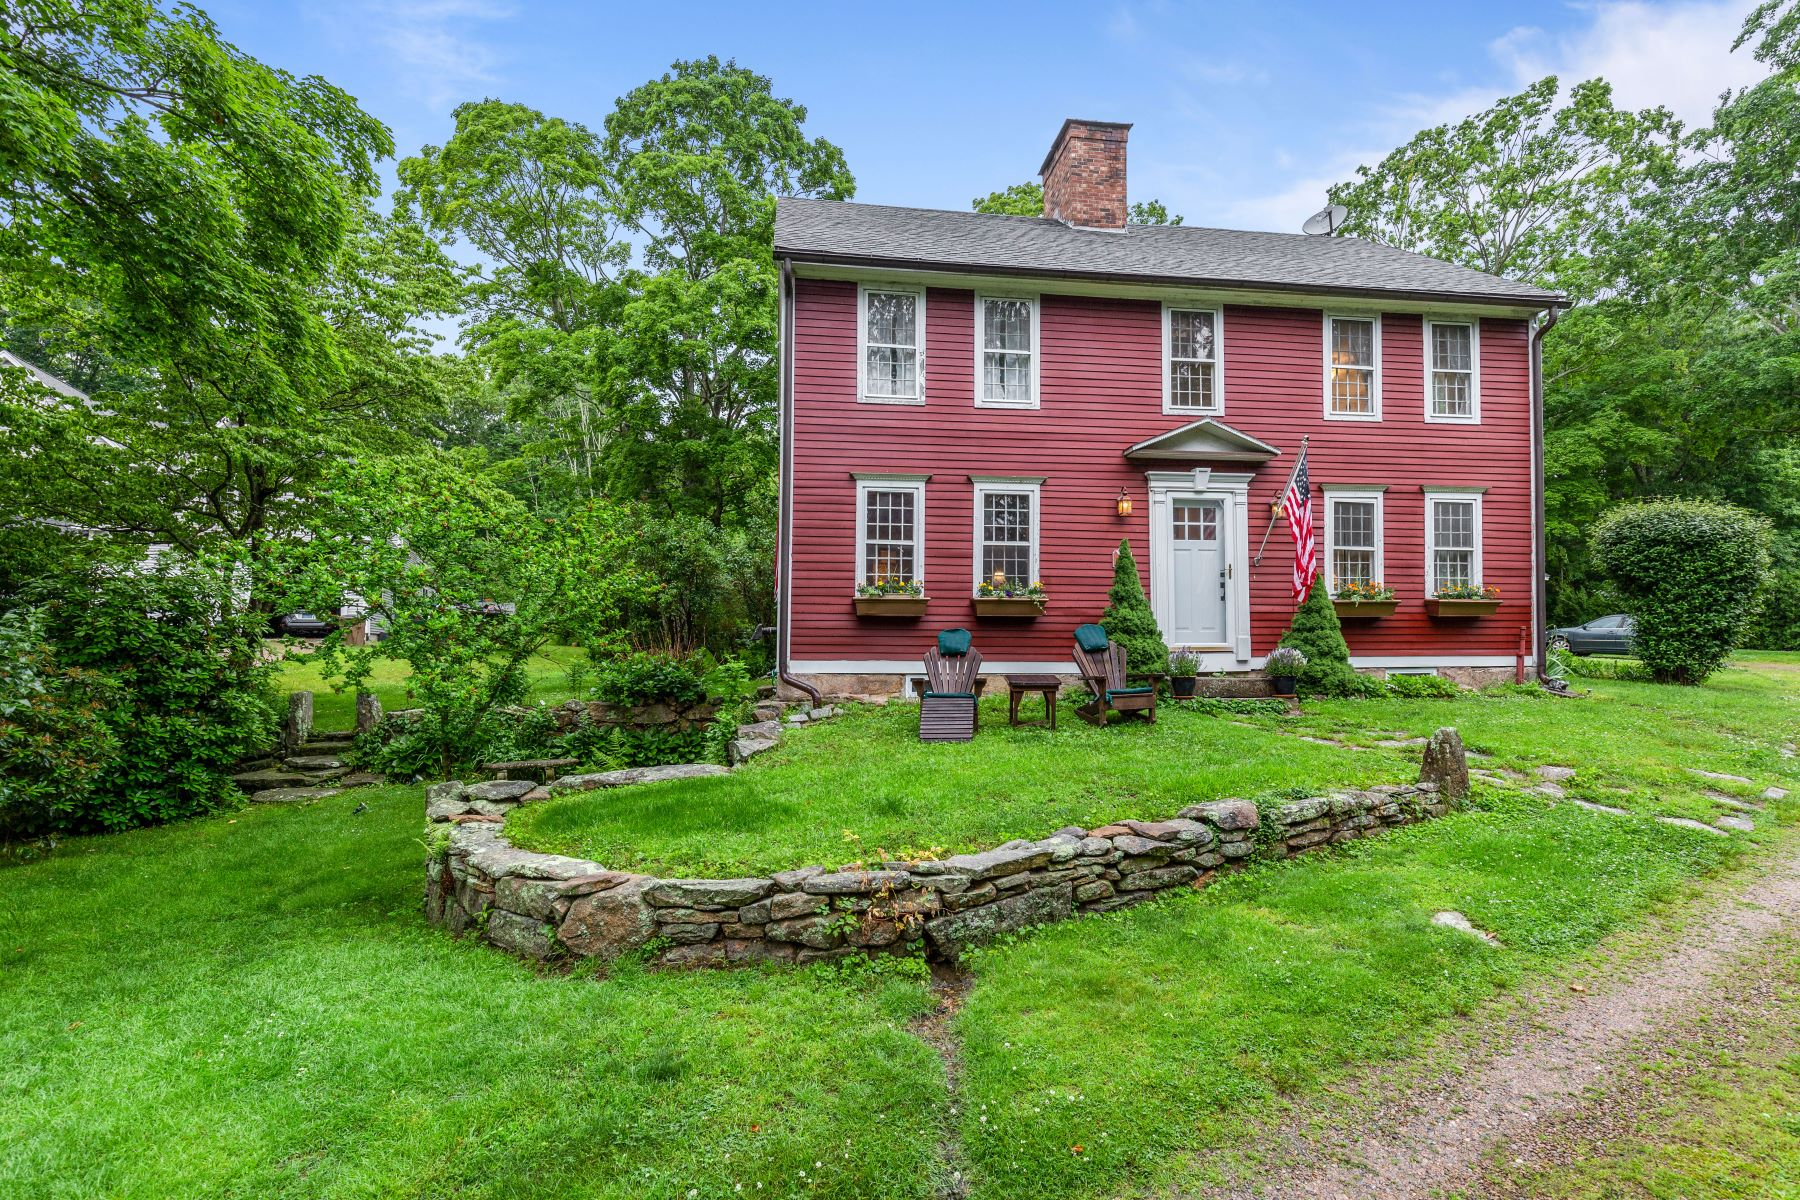 Single Family Homes for Sale at Old World Charm with Today's Lifestyle and Conveniences 365 Boston Post Road East Lyme, Connecticut 06333 United States